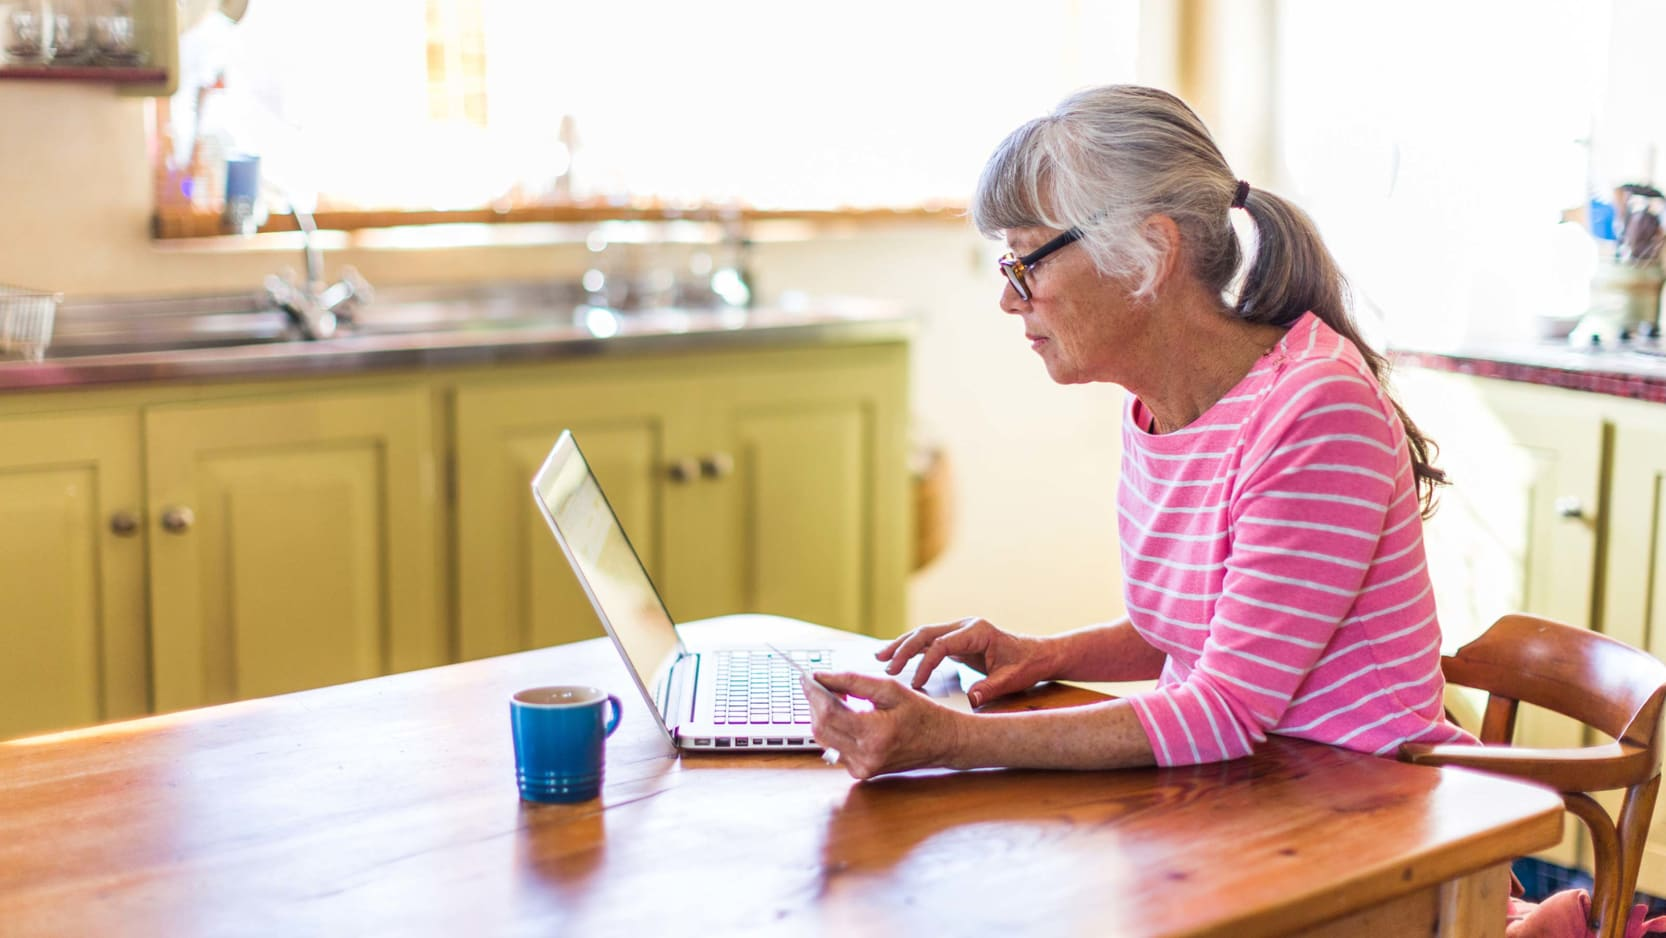 A senior woman sitting at her kitchen table working on her laptop.